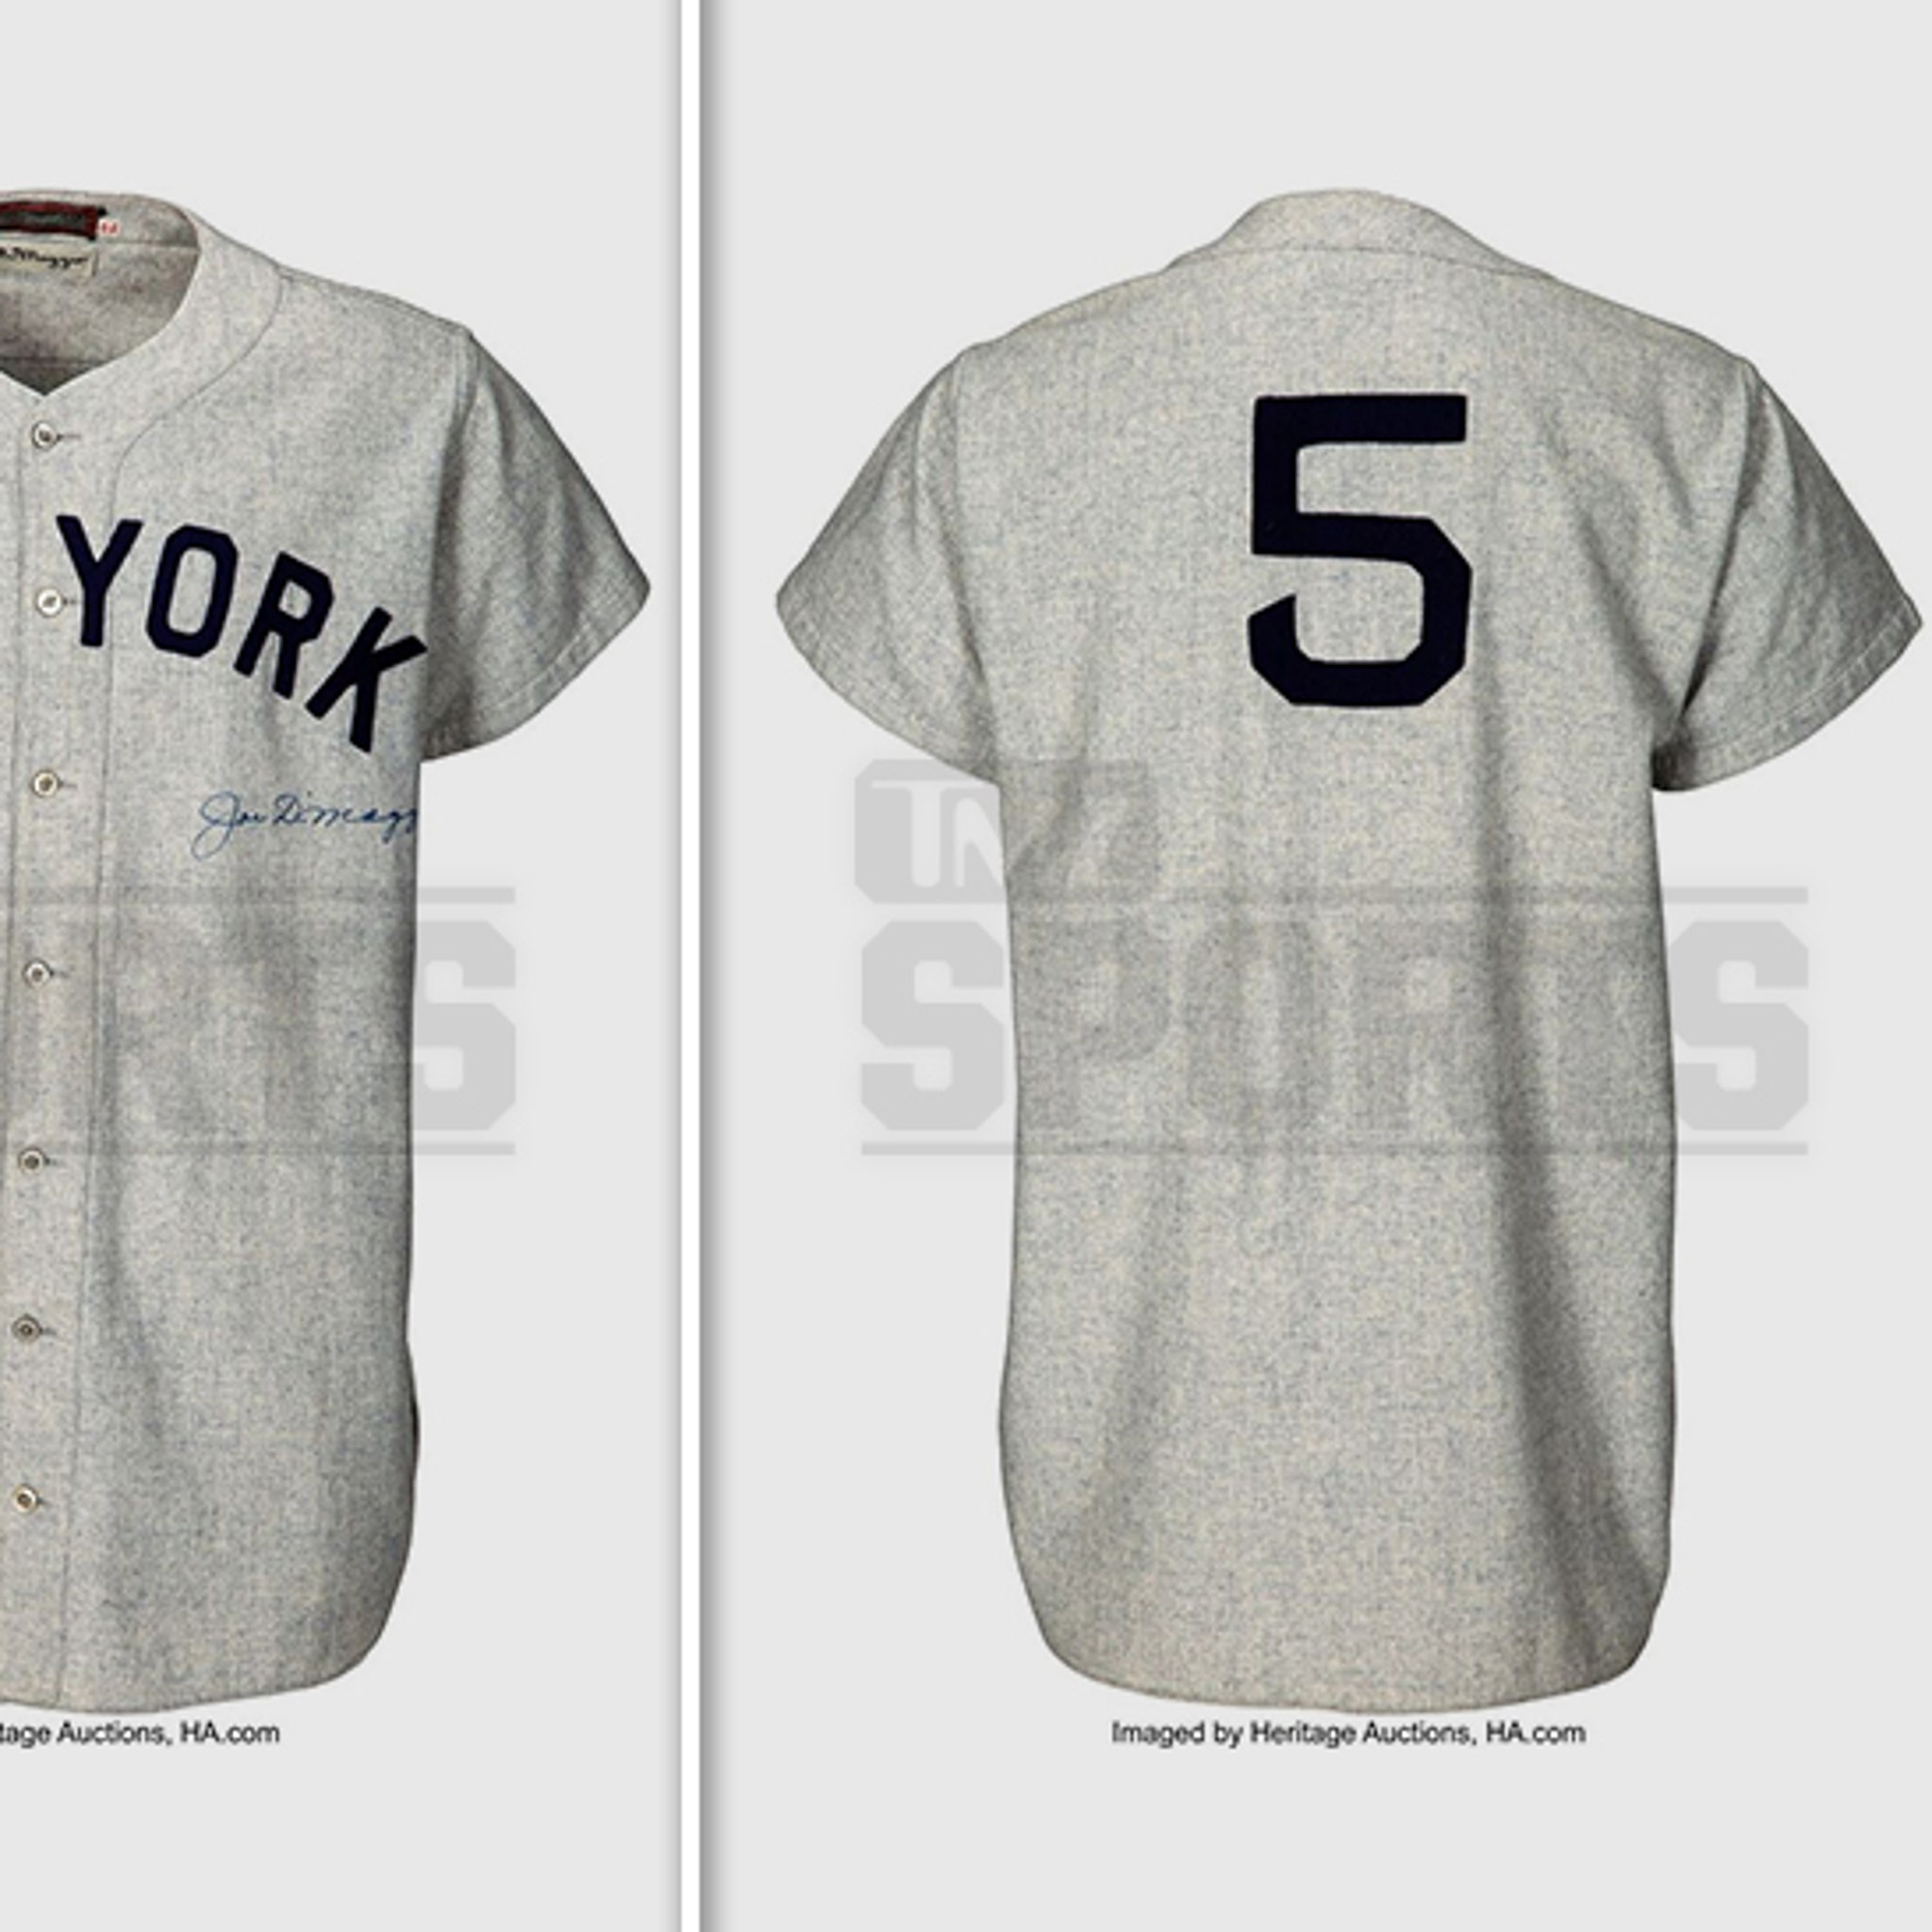 differently 97bd7 2b095 Joe DiMaggio Signed World Series Jersey Expected To Sell For ...